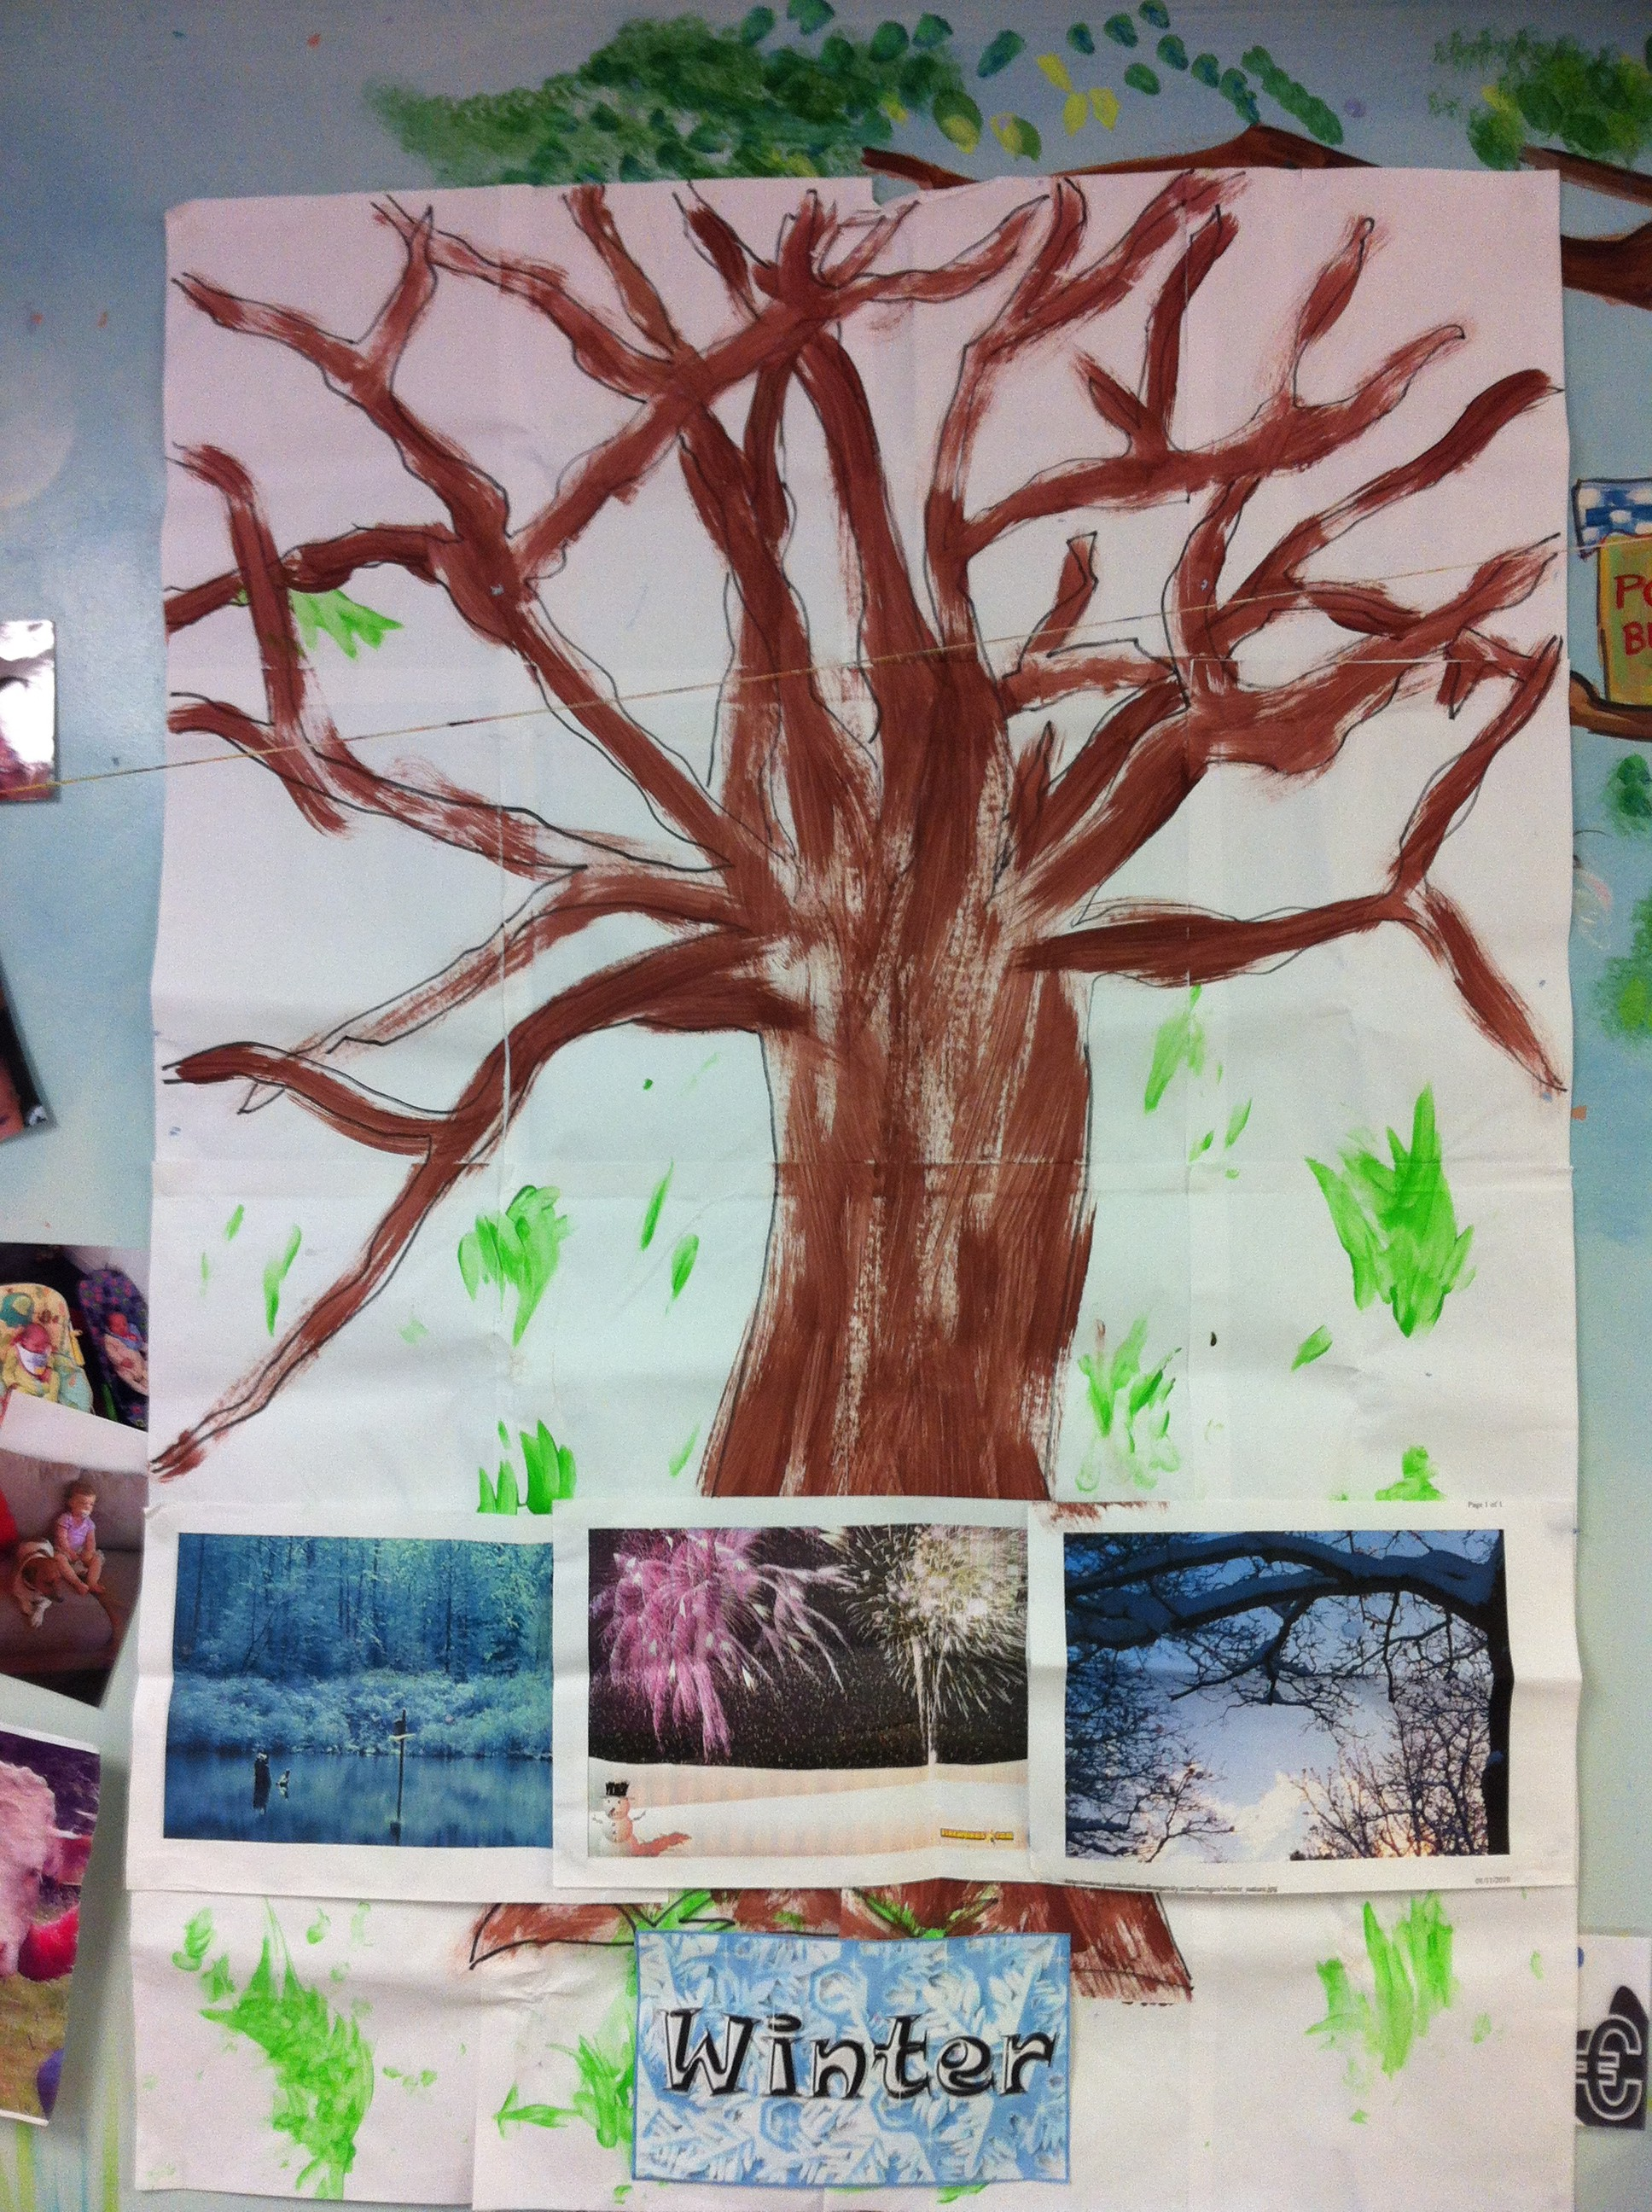 Winter comes to Crawford Childcare